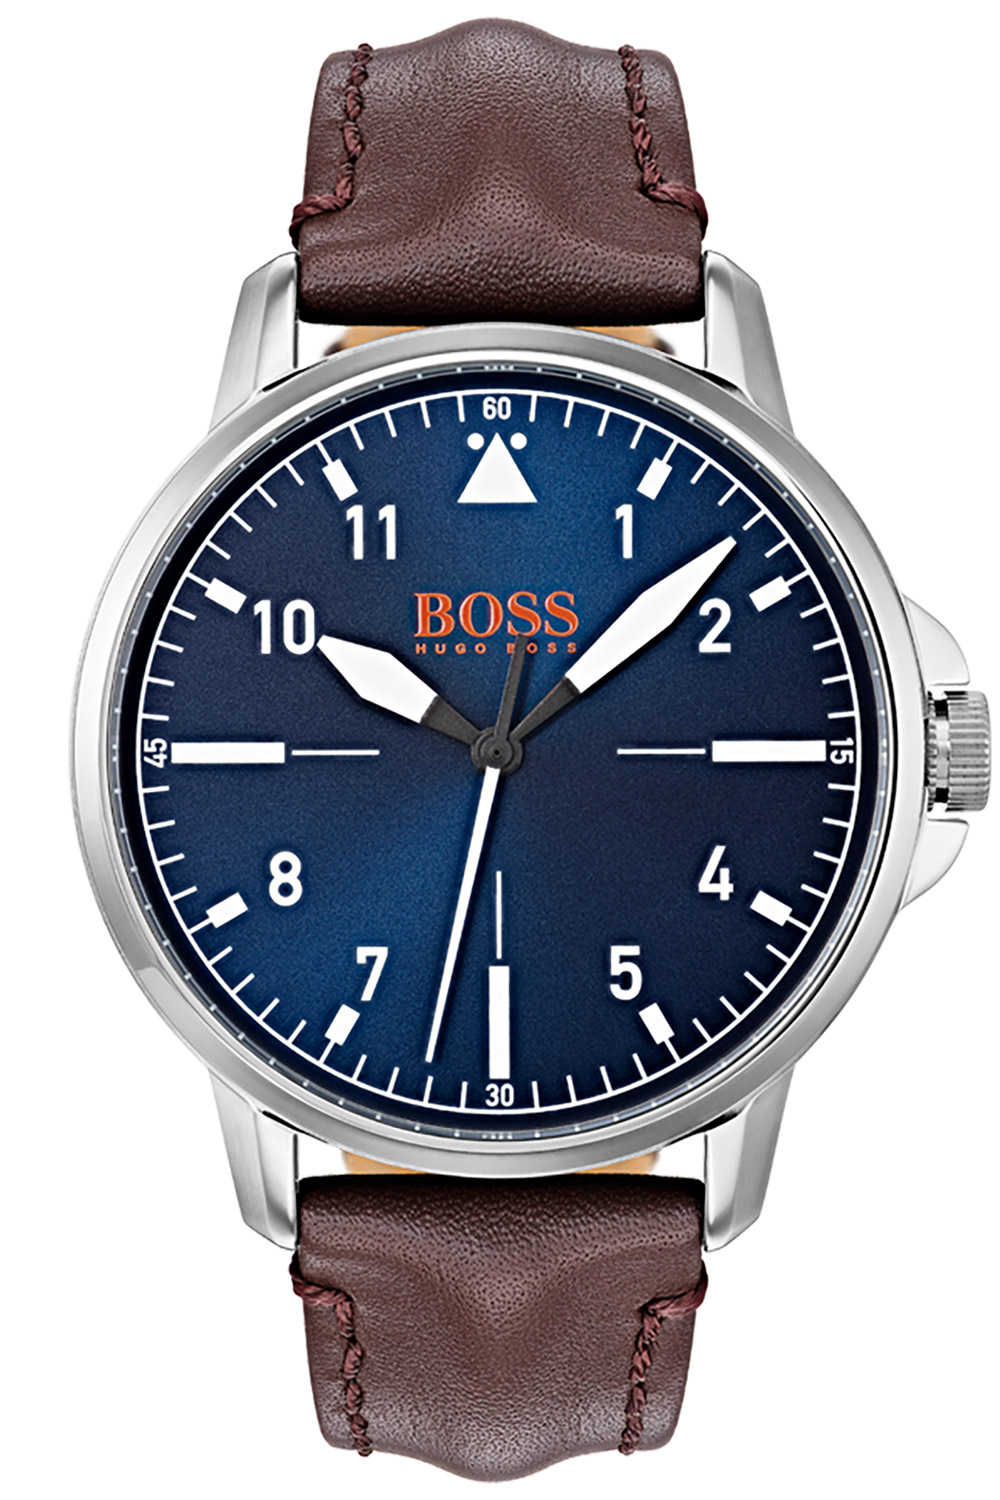 Boss 1550060 Herrenarmbanduhr Chicago Blau/Braun